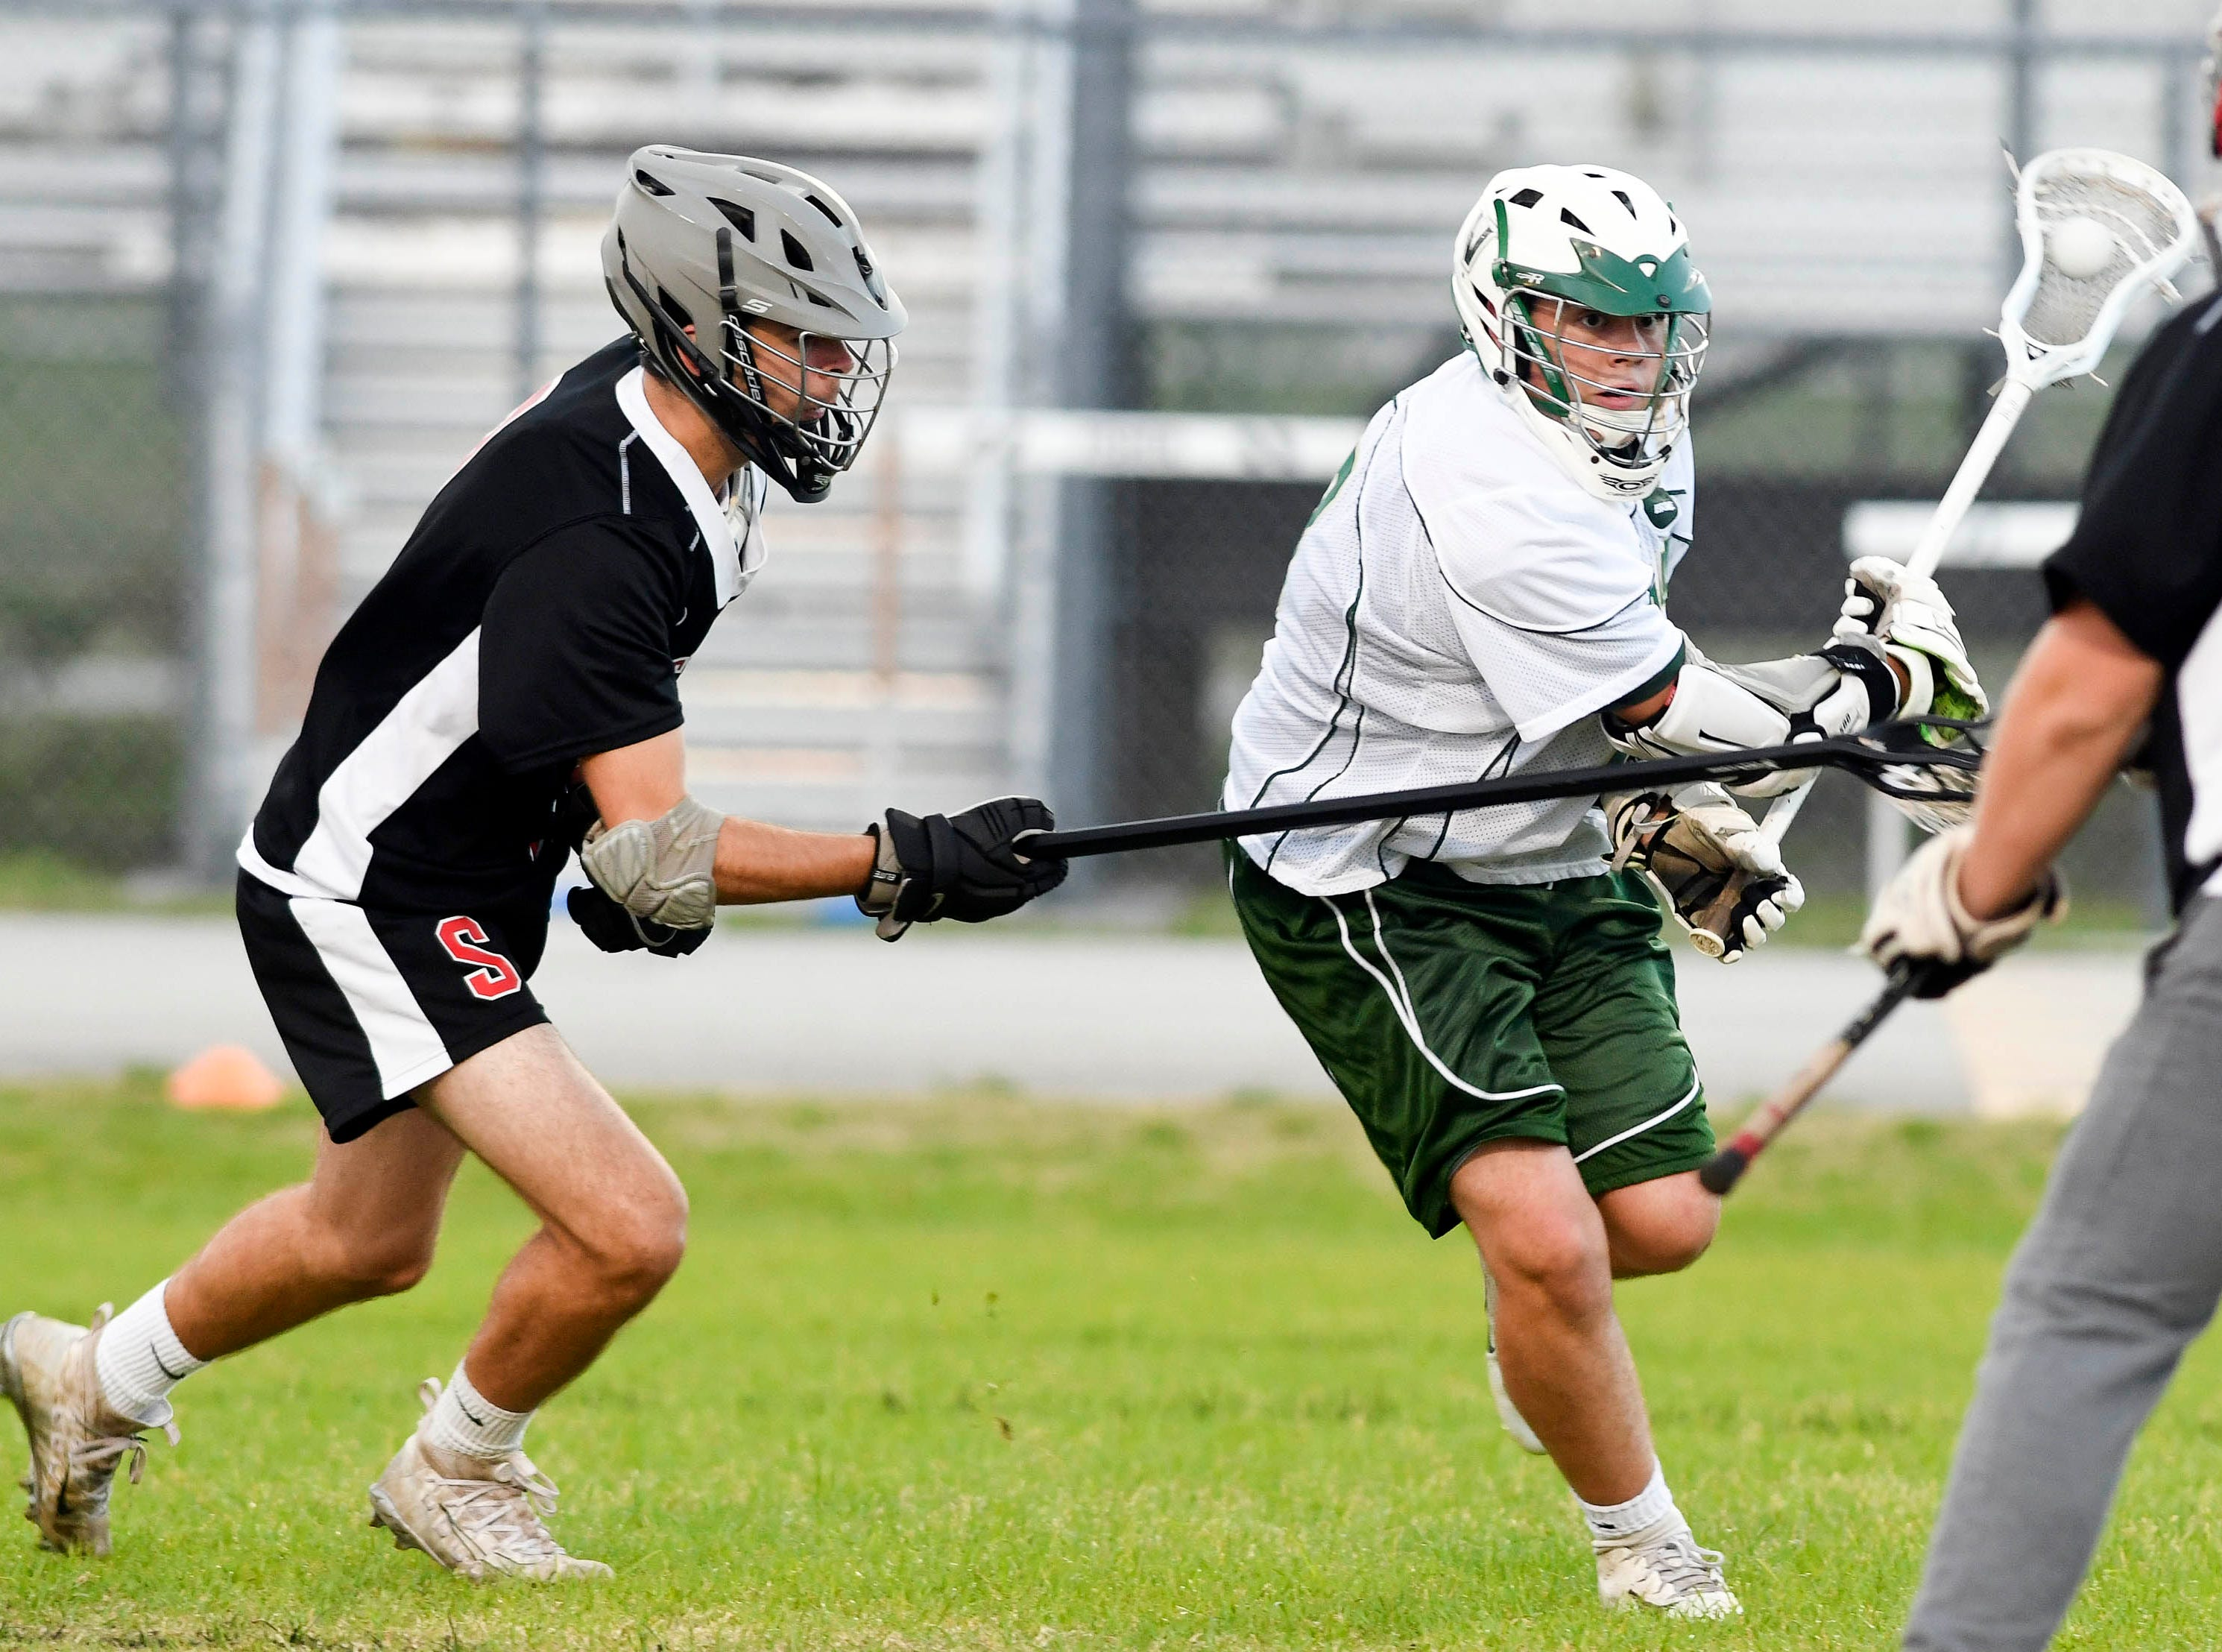 Satellite's Aiden McElroy pursues Matt Lynch of Viera during Tuesday's game.